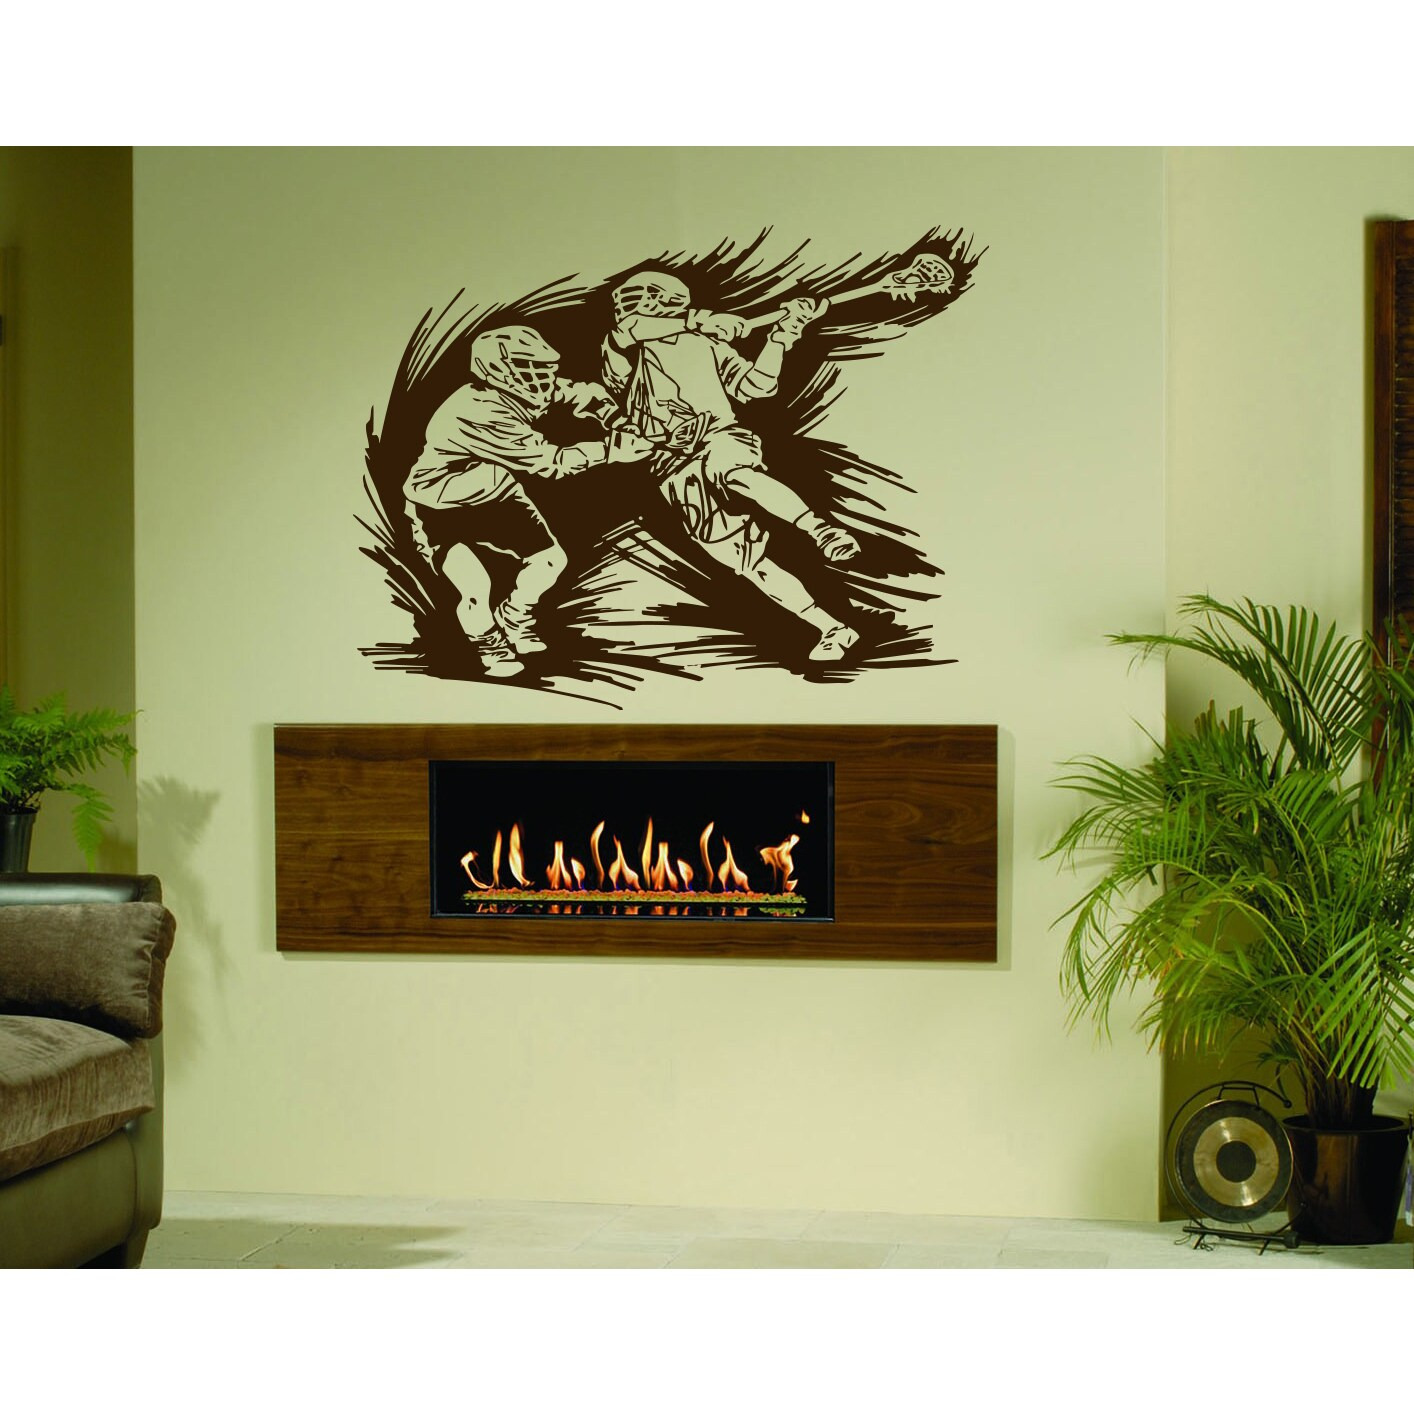 Sport lacrosse Wall Art Sticker Decal Brown - Free Shipping On ...